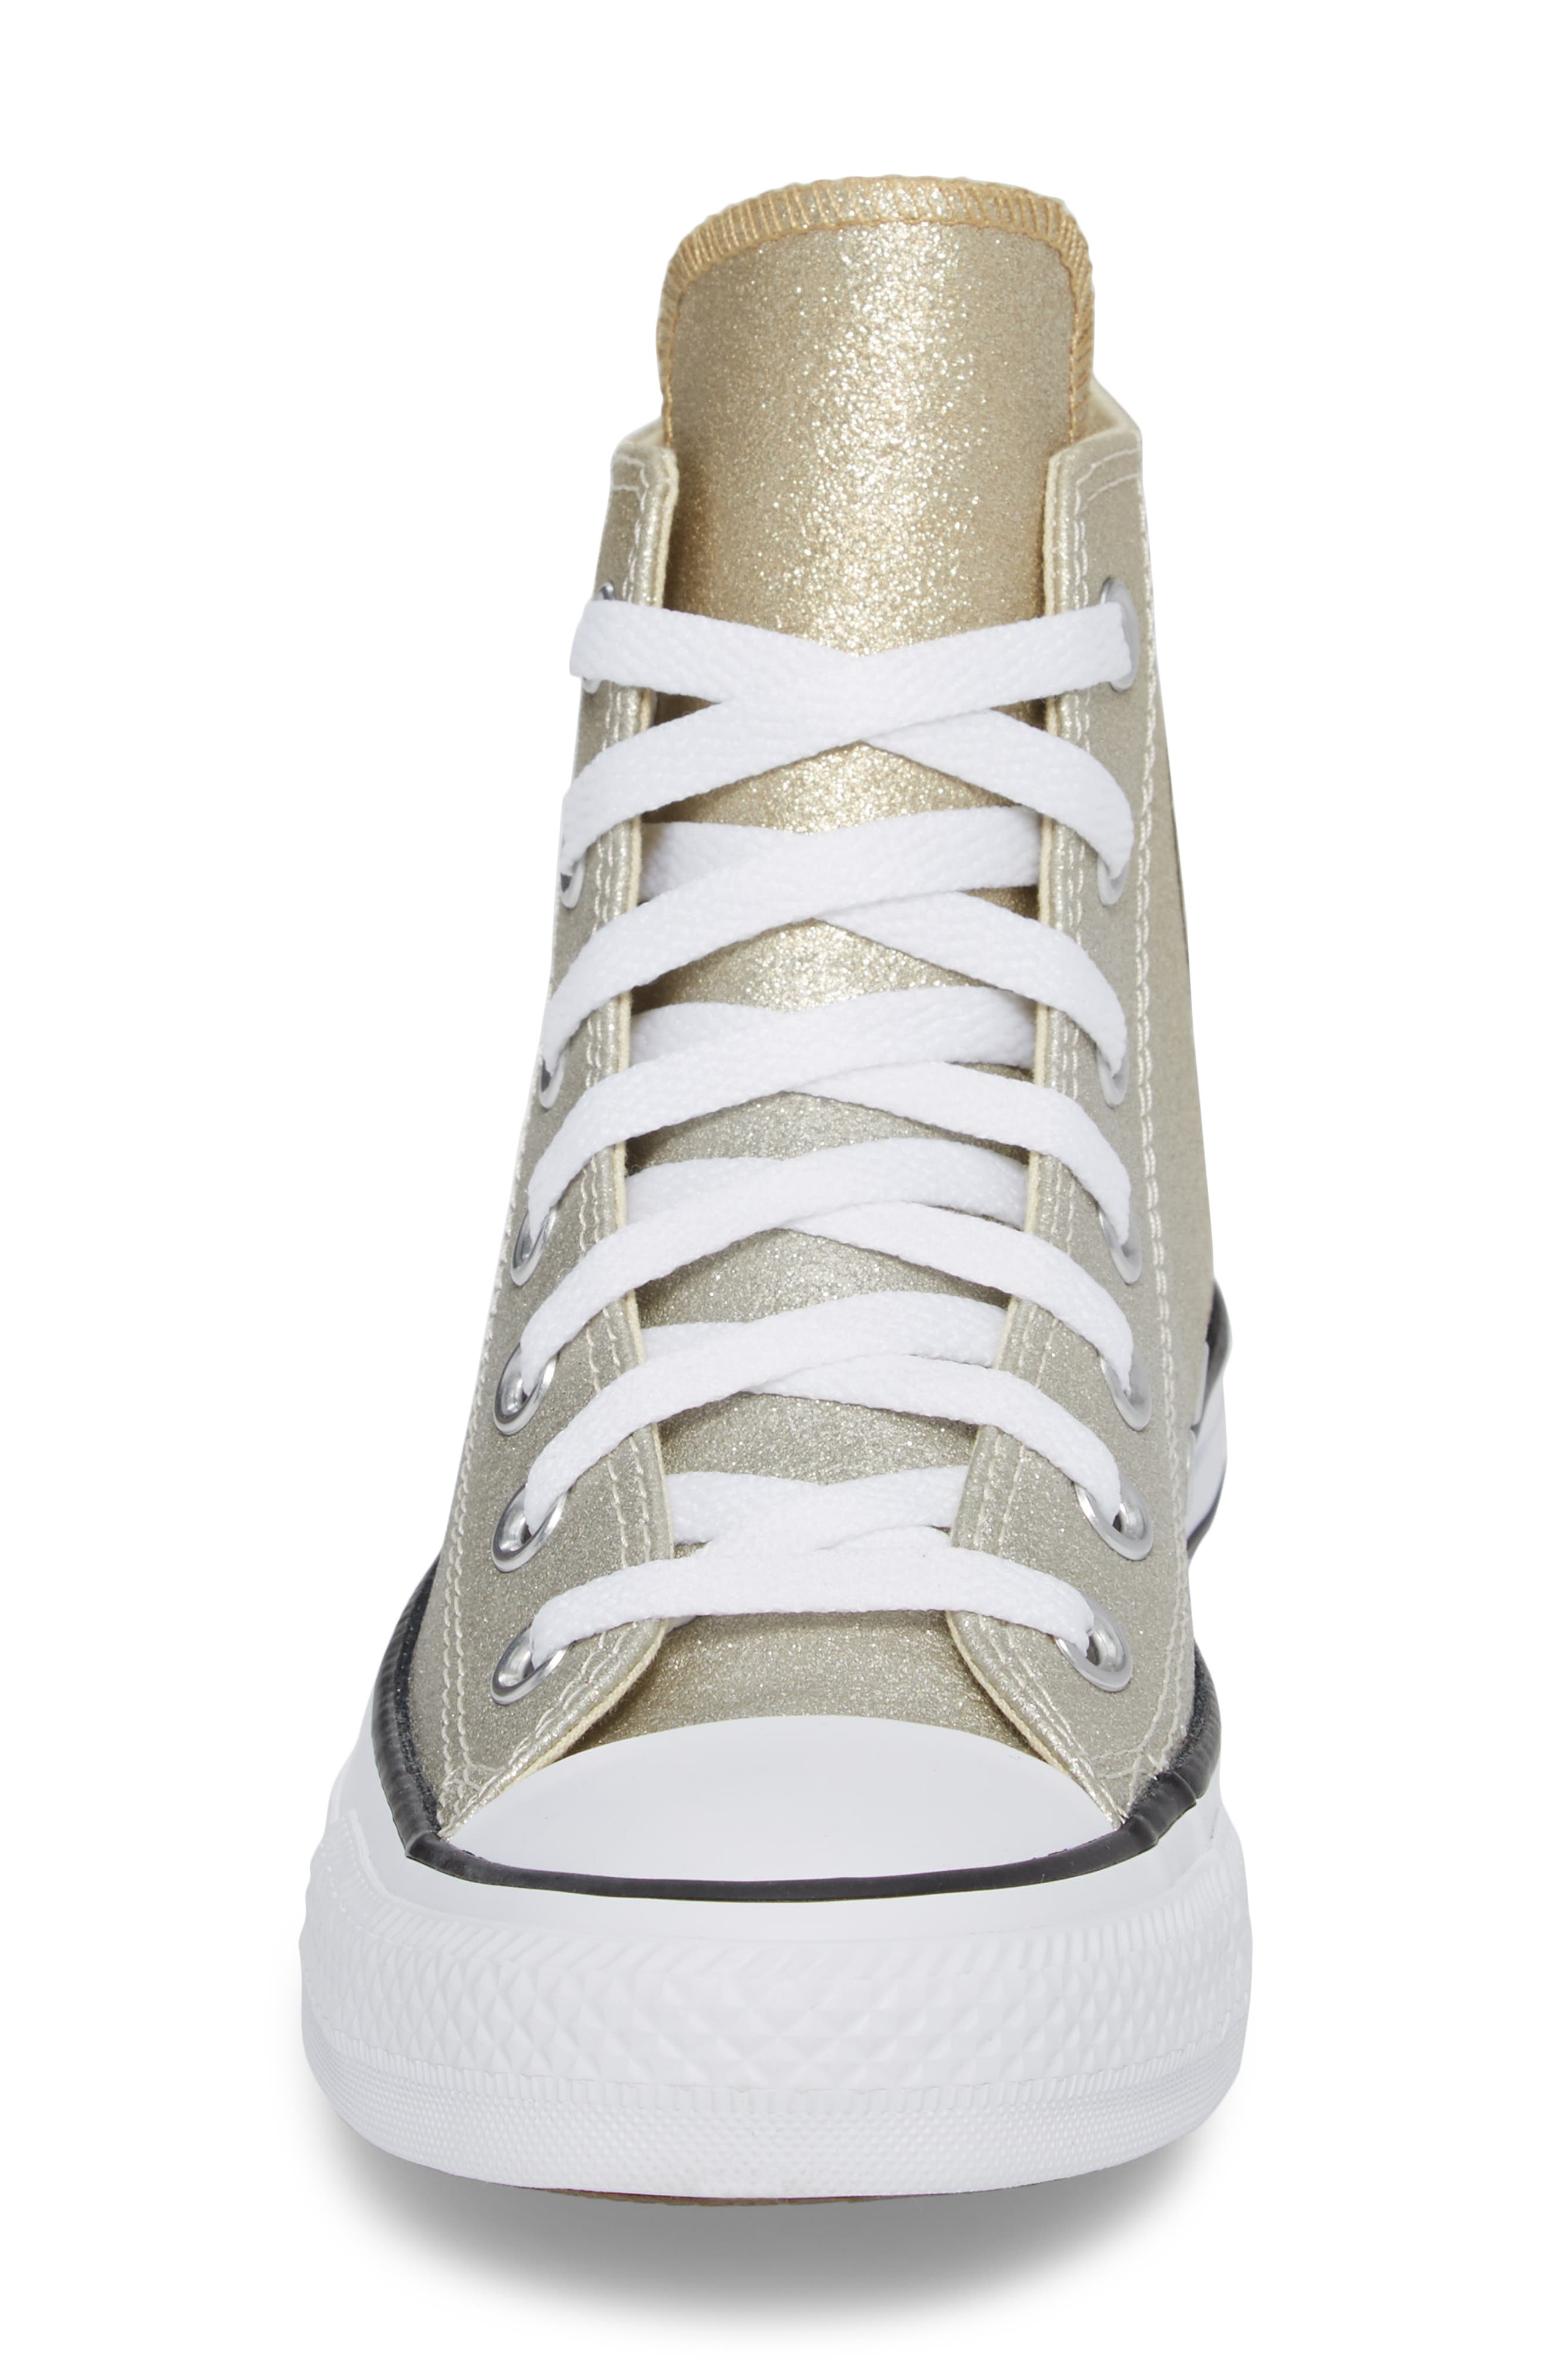 Chuck Taylor<sup>®</sup> All Star<sup>®</sup> Ombré Metallic High Top Sneaker,                             Alternate thumbnail 4, color,                             Light Gold